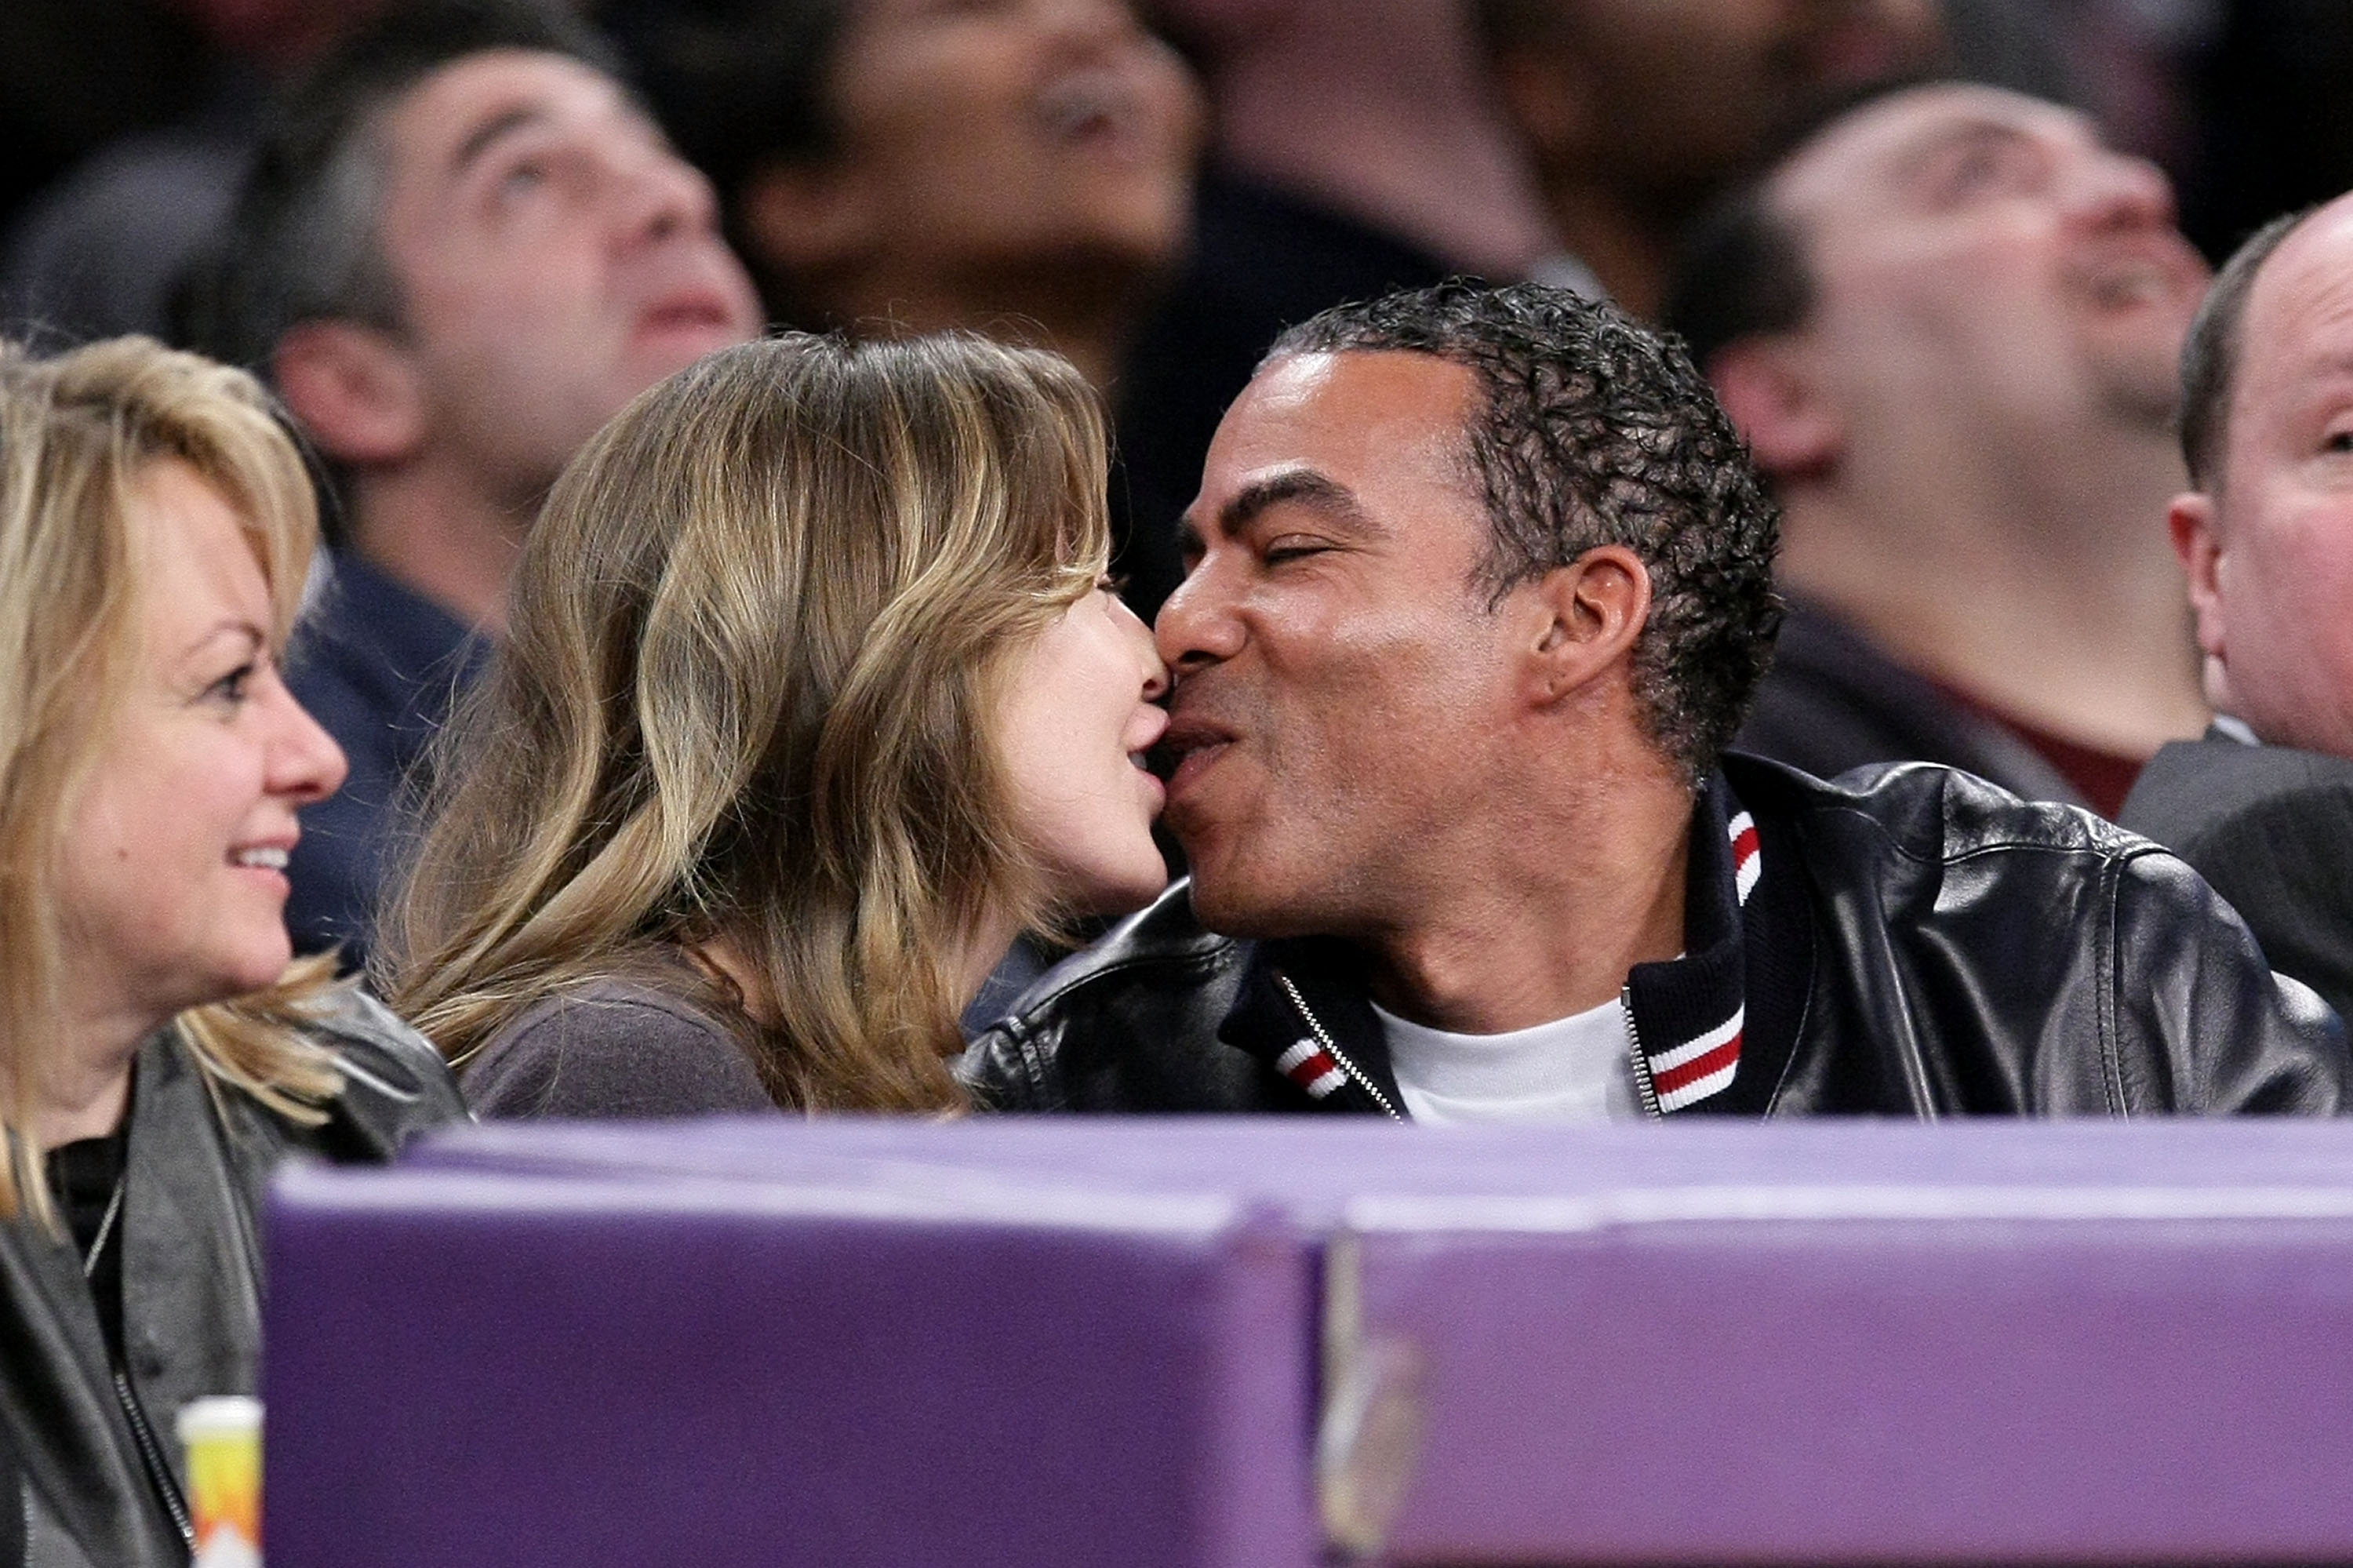 Ellen Pompeo and Chris Ivery locked lips at at Lakers game.